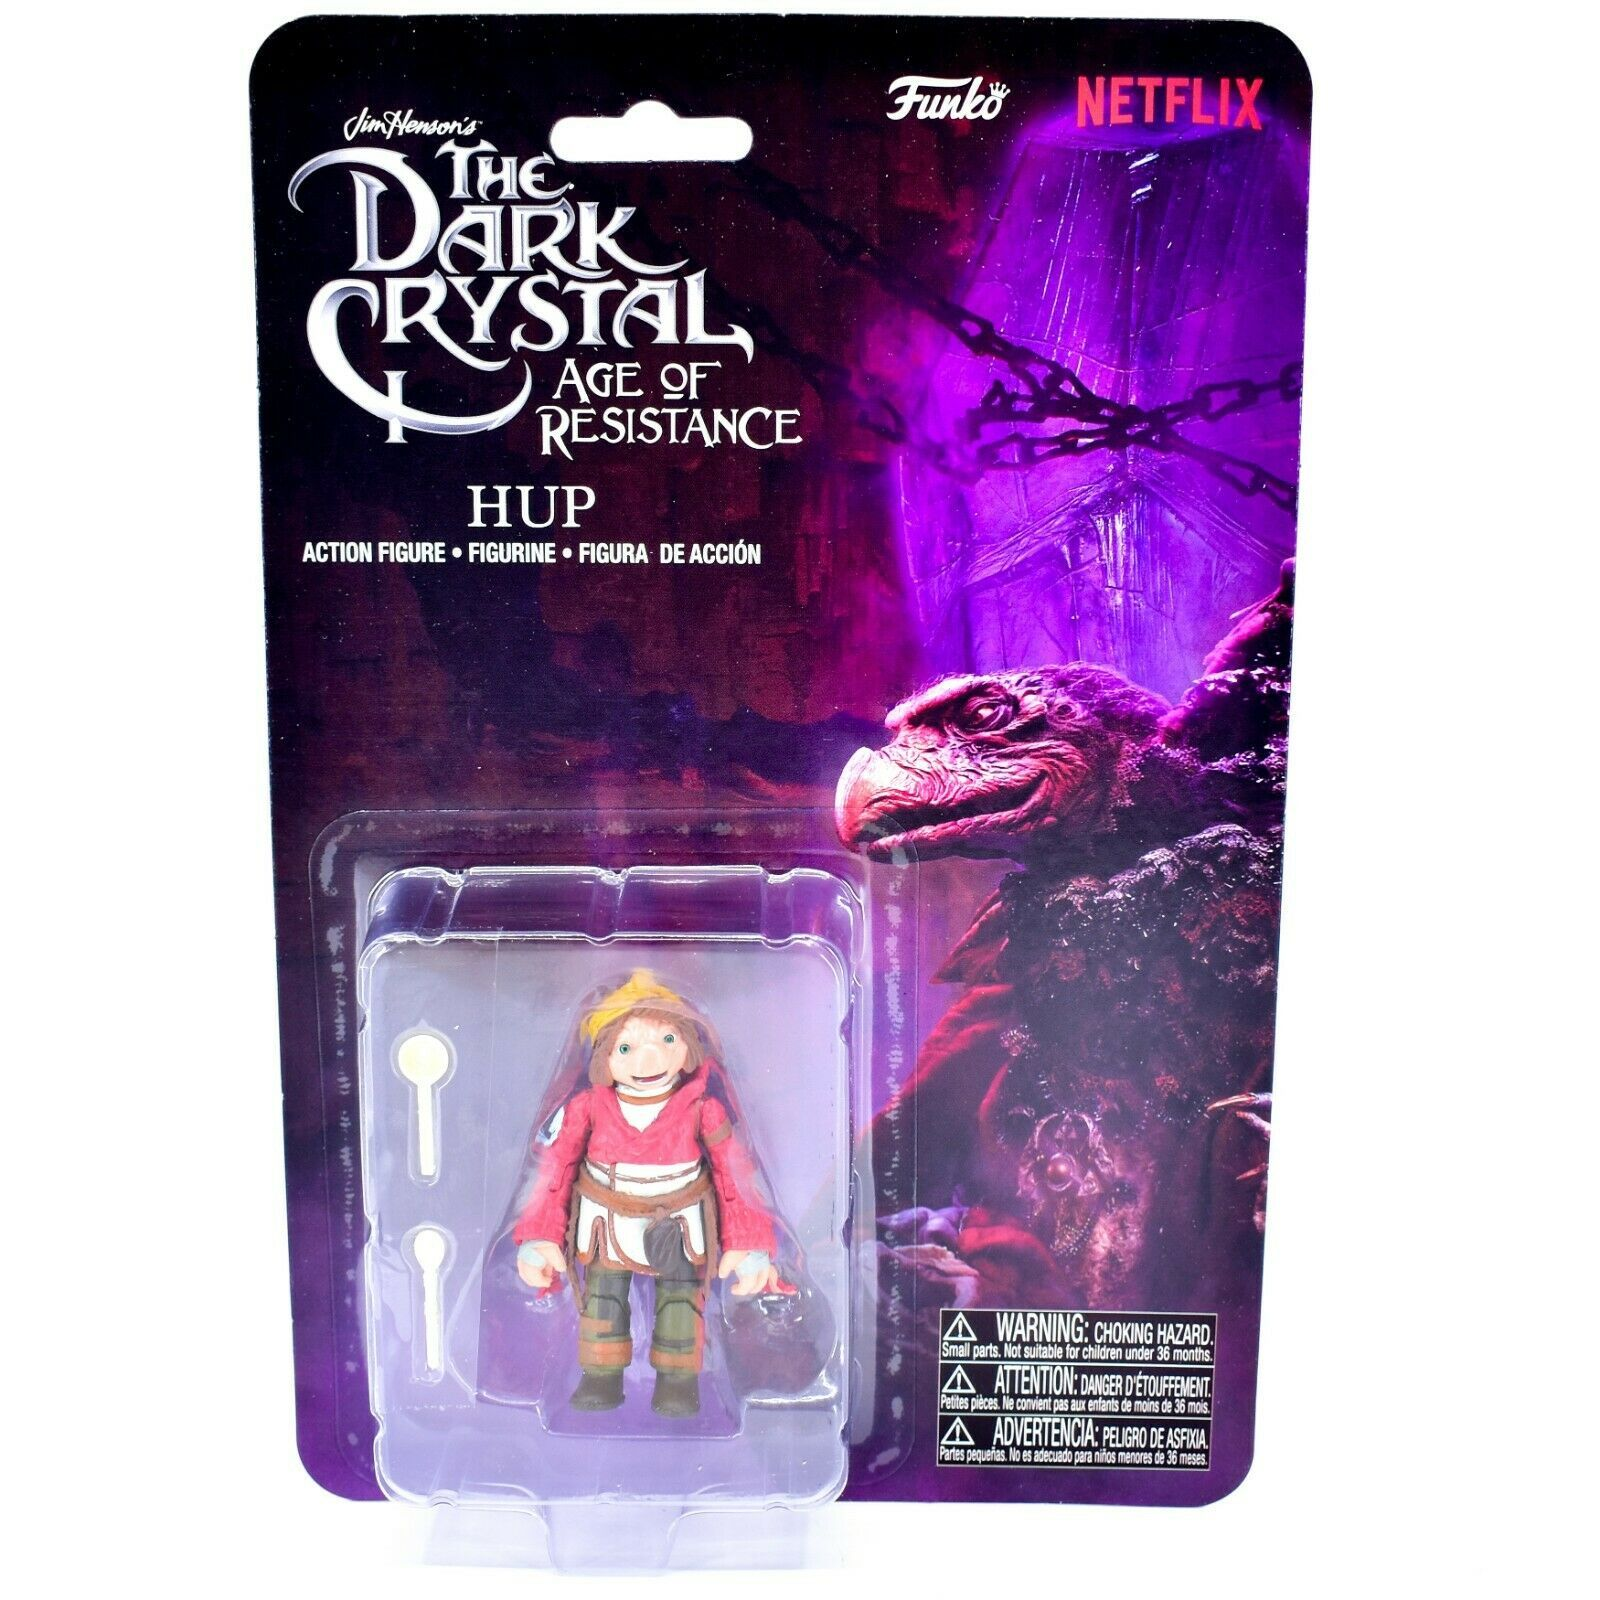 Funko Jim Henson's The Dark Crystal Age of Resistance Hup Action Figure